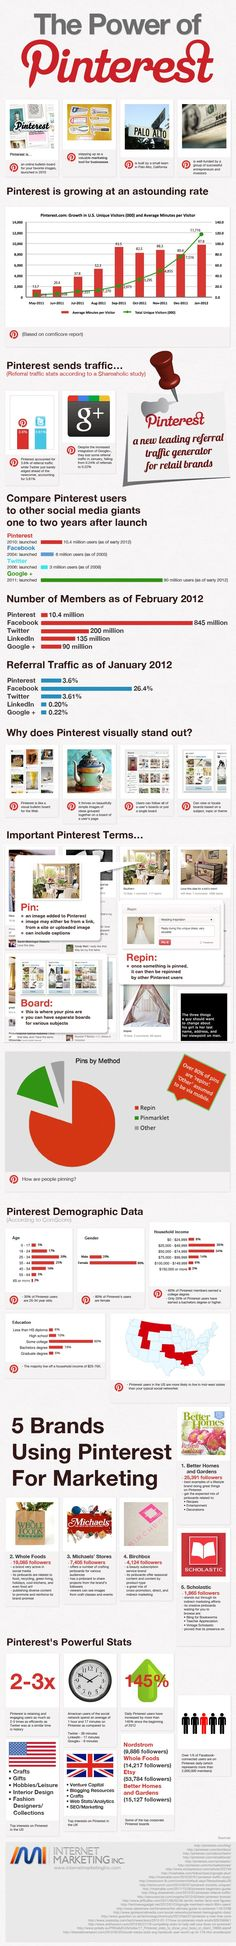 Pinterest Data You Cant Ignore: The Ultimate Guide to Pinterest [infographic]